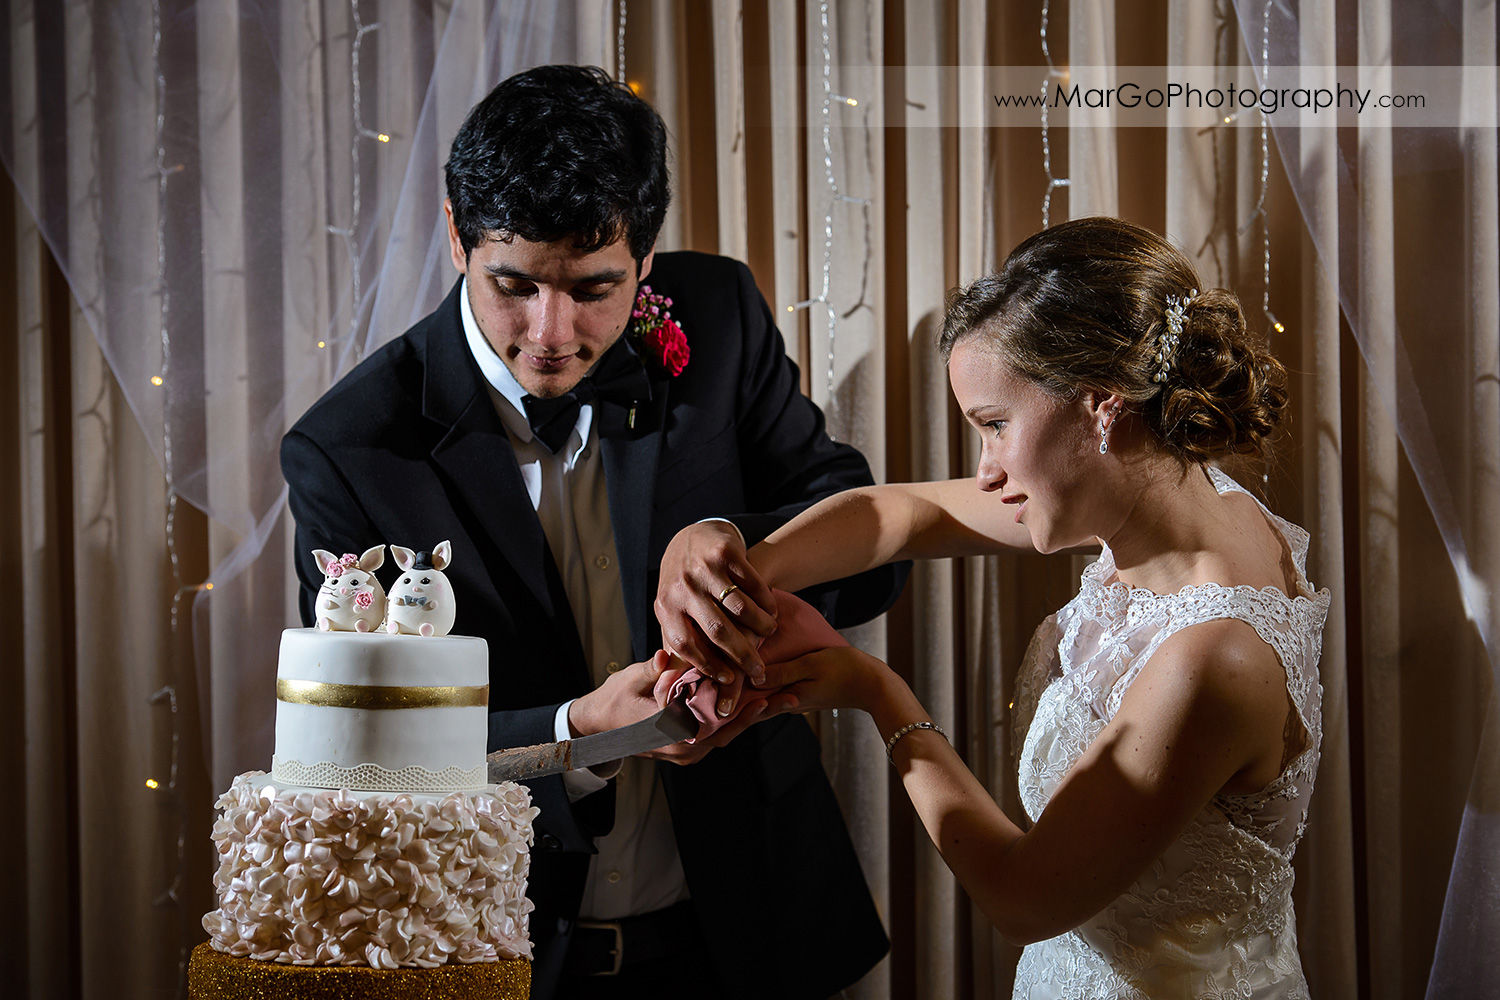 bride and groom cutting wedding cake during reception at Fremont Century House & Gardens